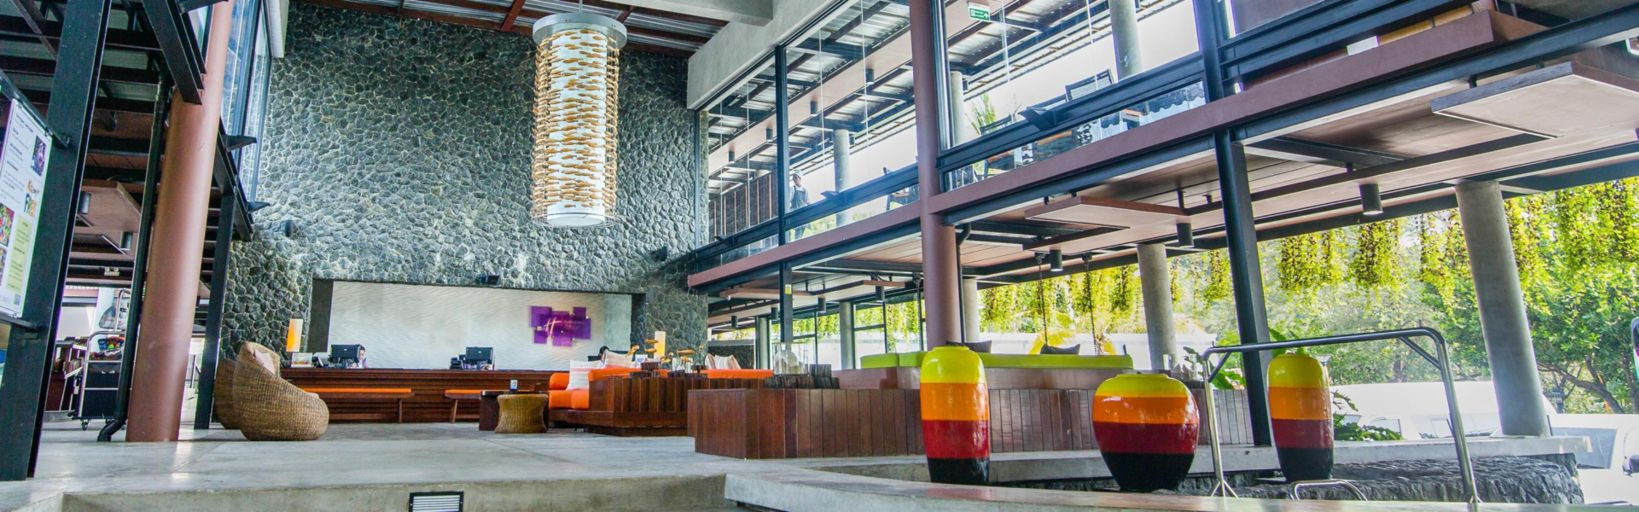 holiday-inn-resort-krabi-4589001562-16×5